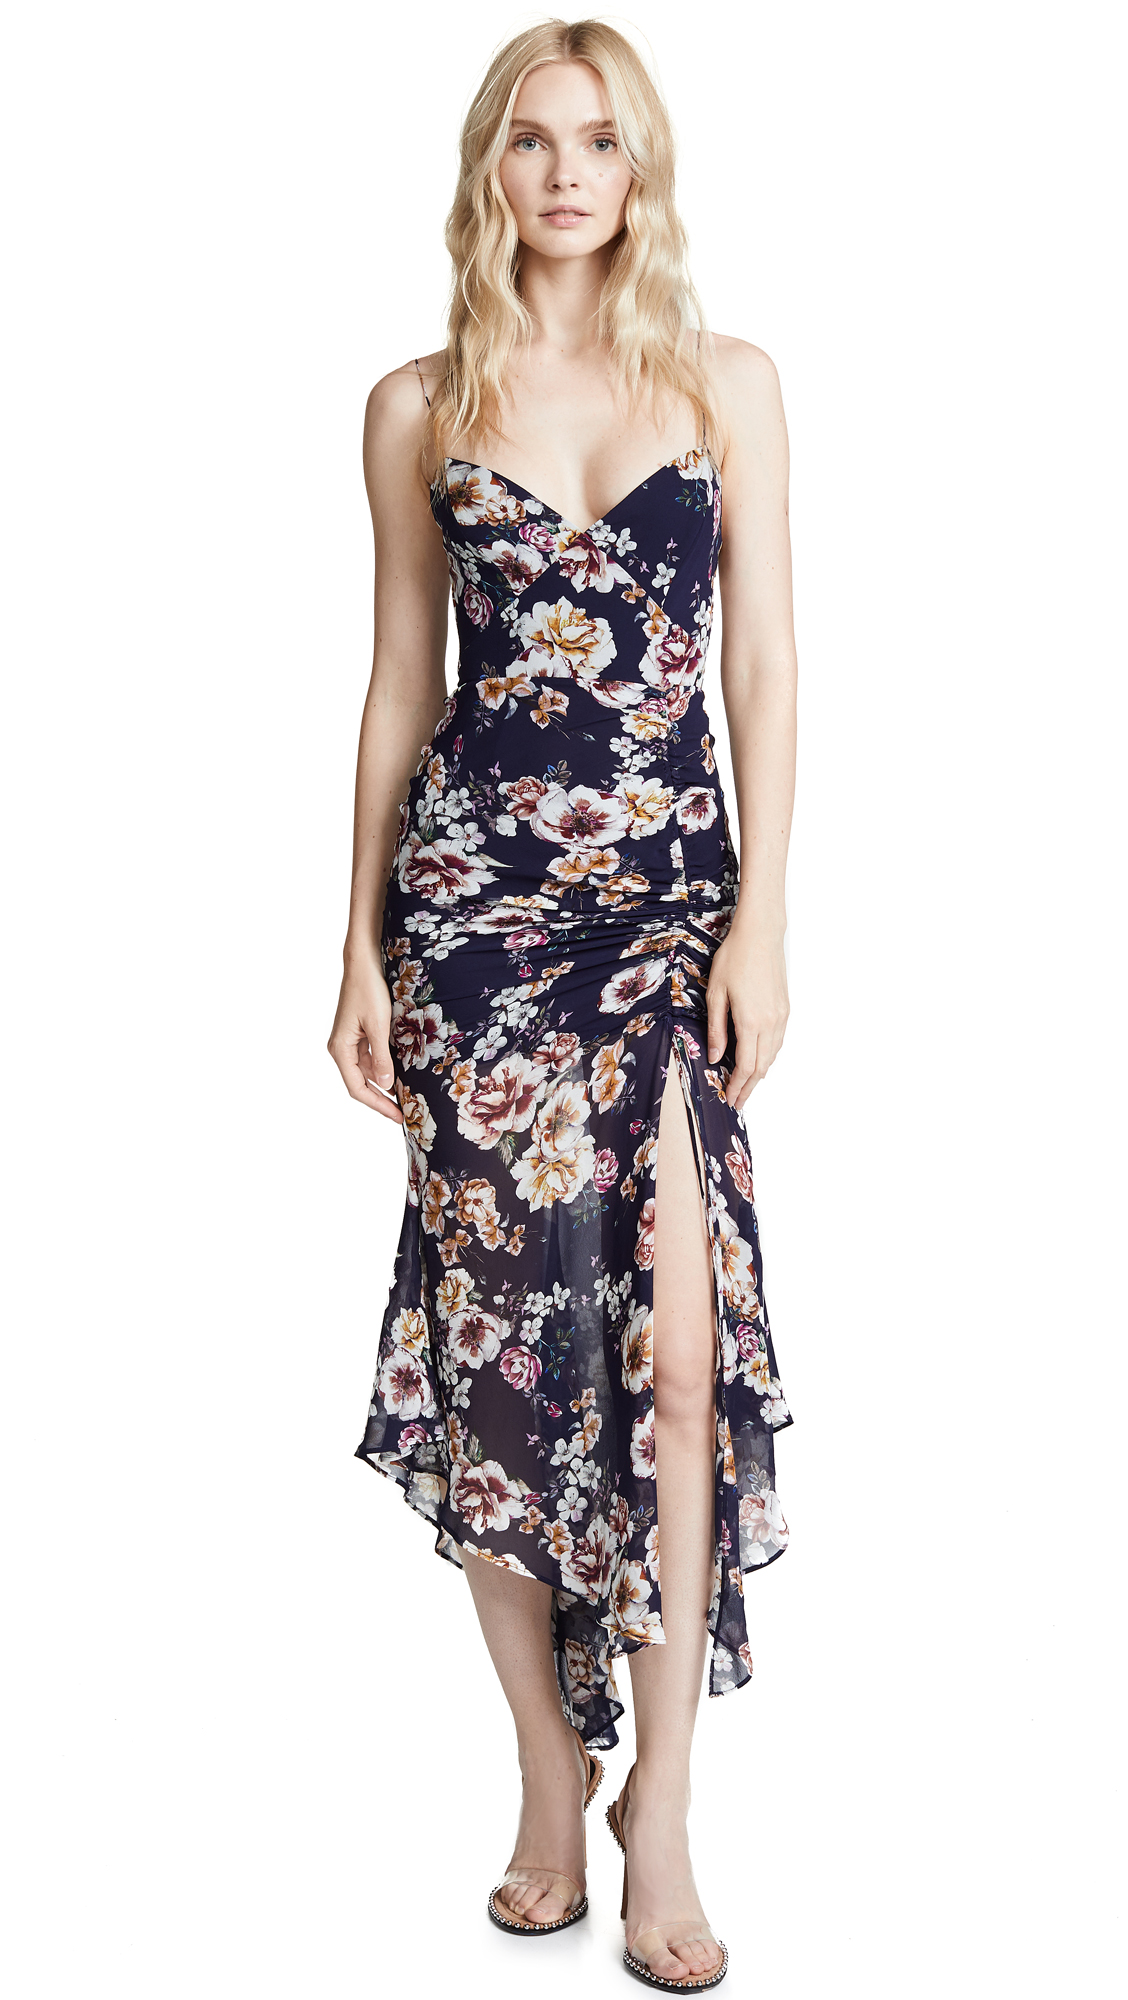 Nicholas Floral Drawstring Dress In Navy Floral